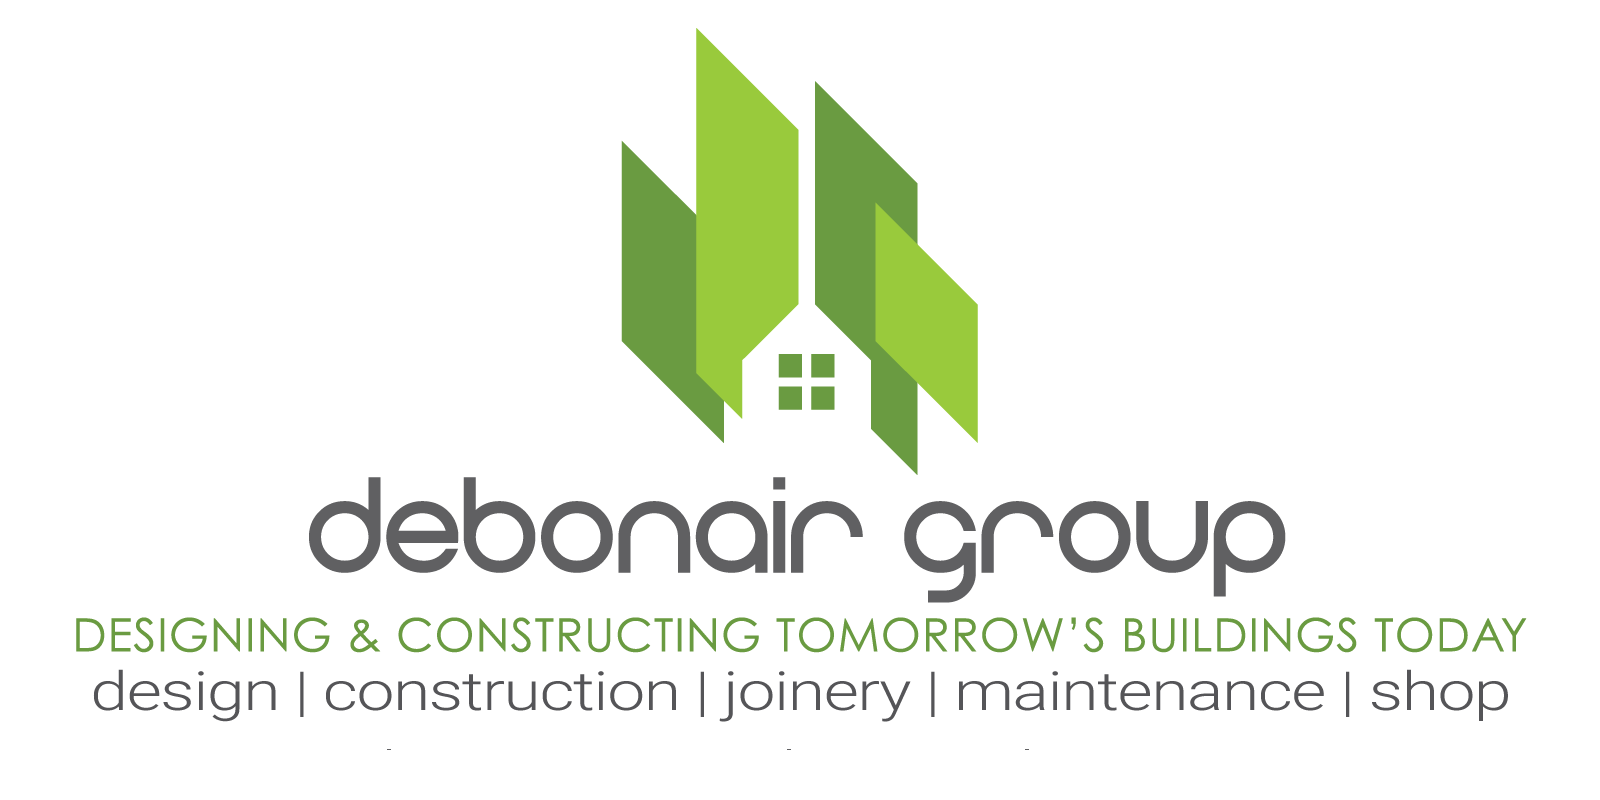 Debonair Group | design • construction • joinery • maintenance